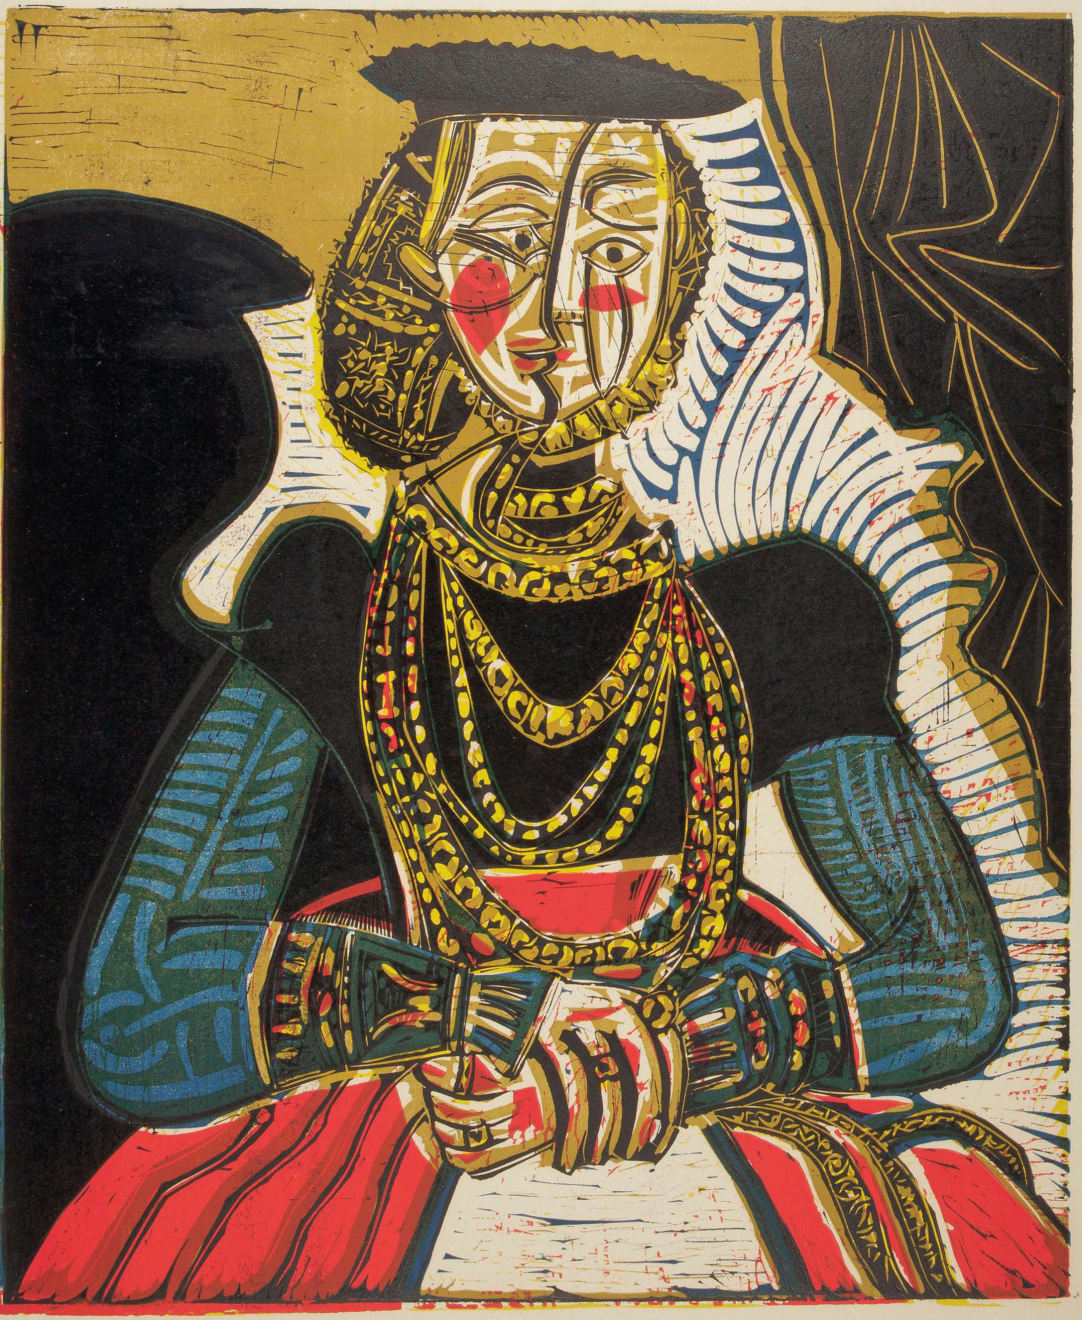 Pablo Picasso, Portrait of a Woman (After Cranach the Younger), 1962